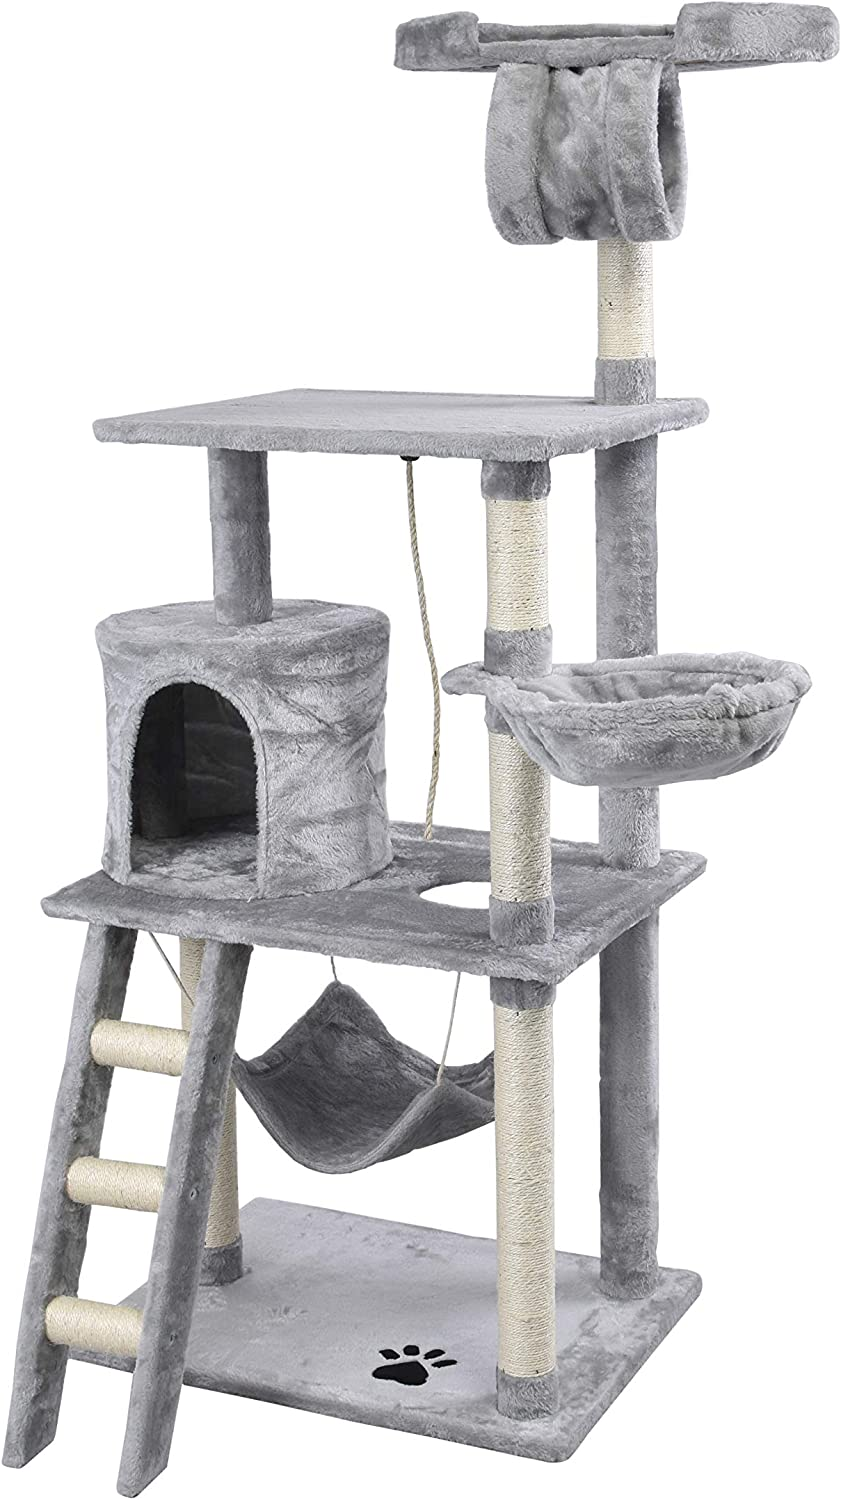 GOJOOASIS Cat Tree Tower Condo Furniture Scratch Post for Kittens Pet House Play